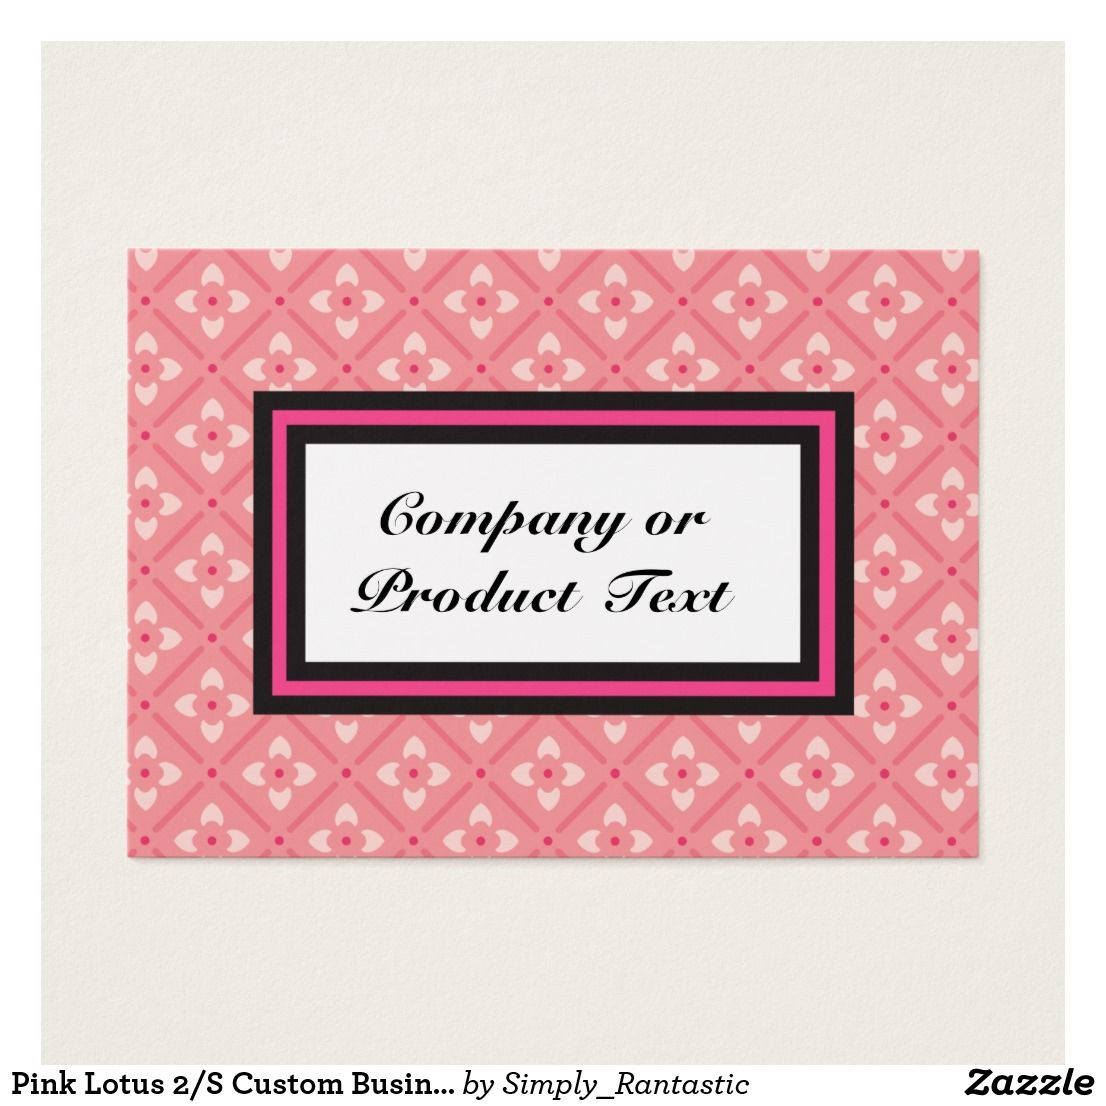 Pink Lotus 2/S Custom Business/product card